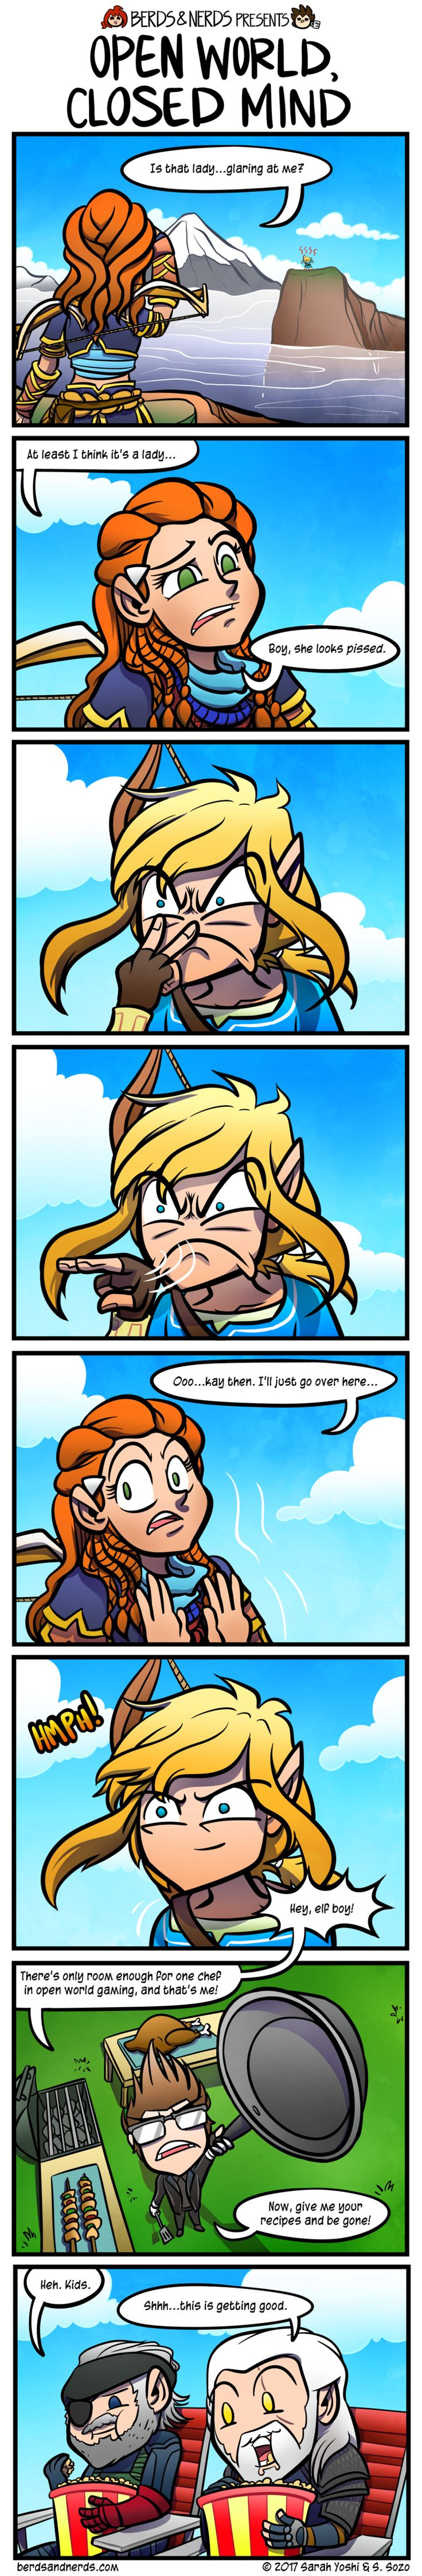 The Legend of Zelda: Breath of the Wild: Image Gallery | Know Your Meme